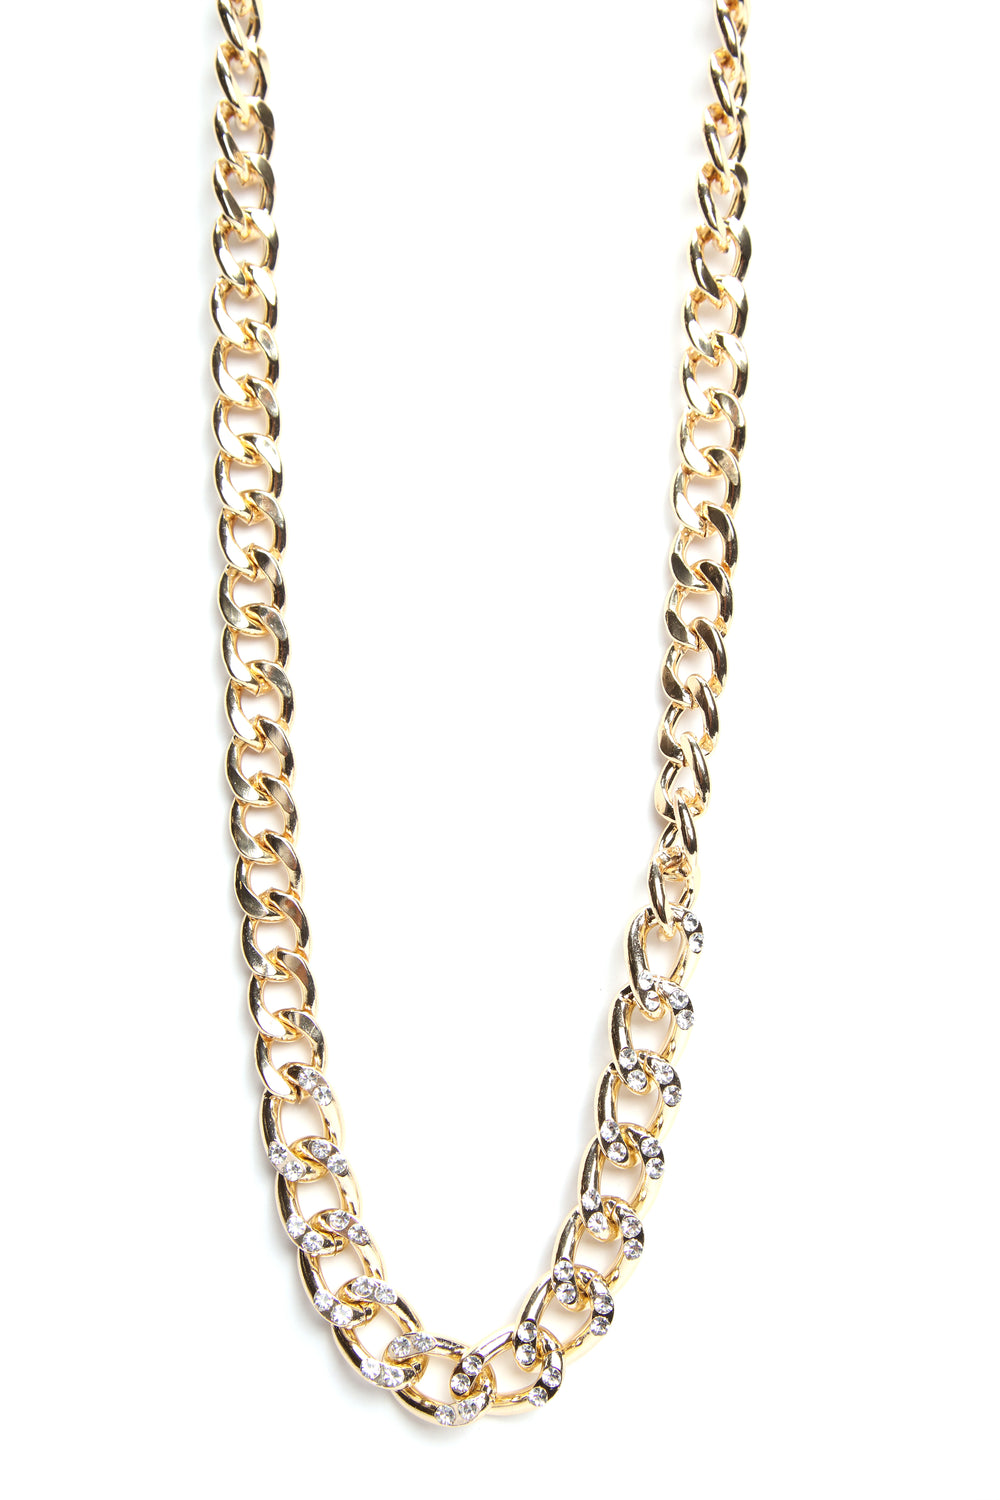 Iced Links Necklace - Gold